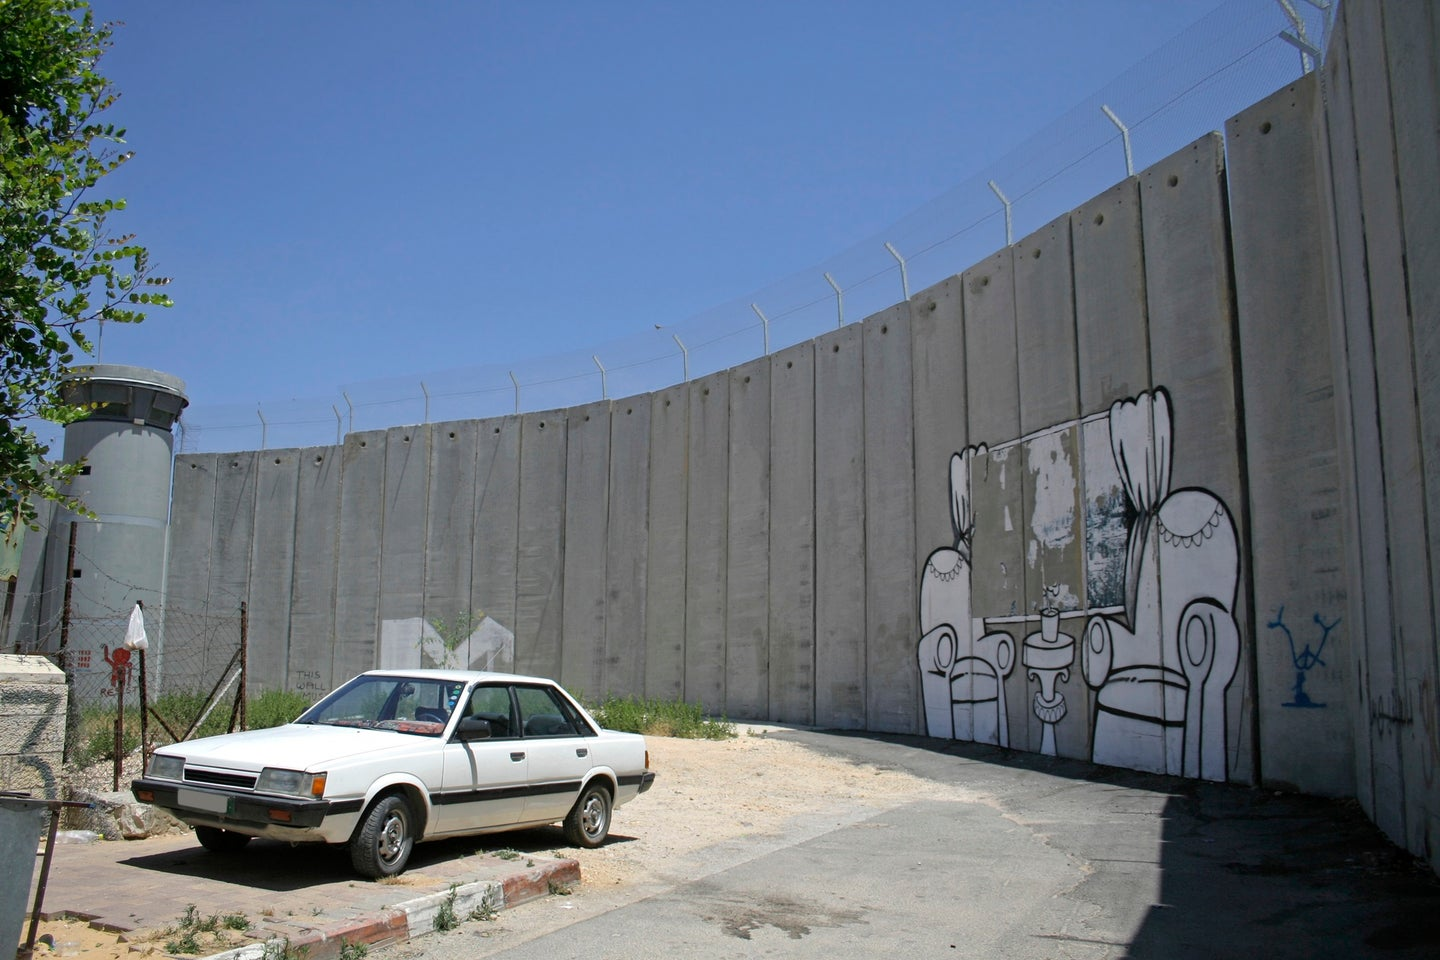 The graffiti-marked West Bank wall with a white car in front